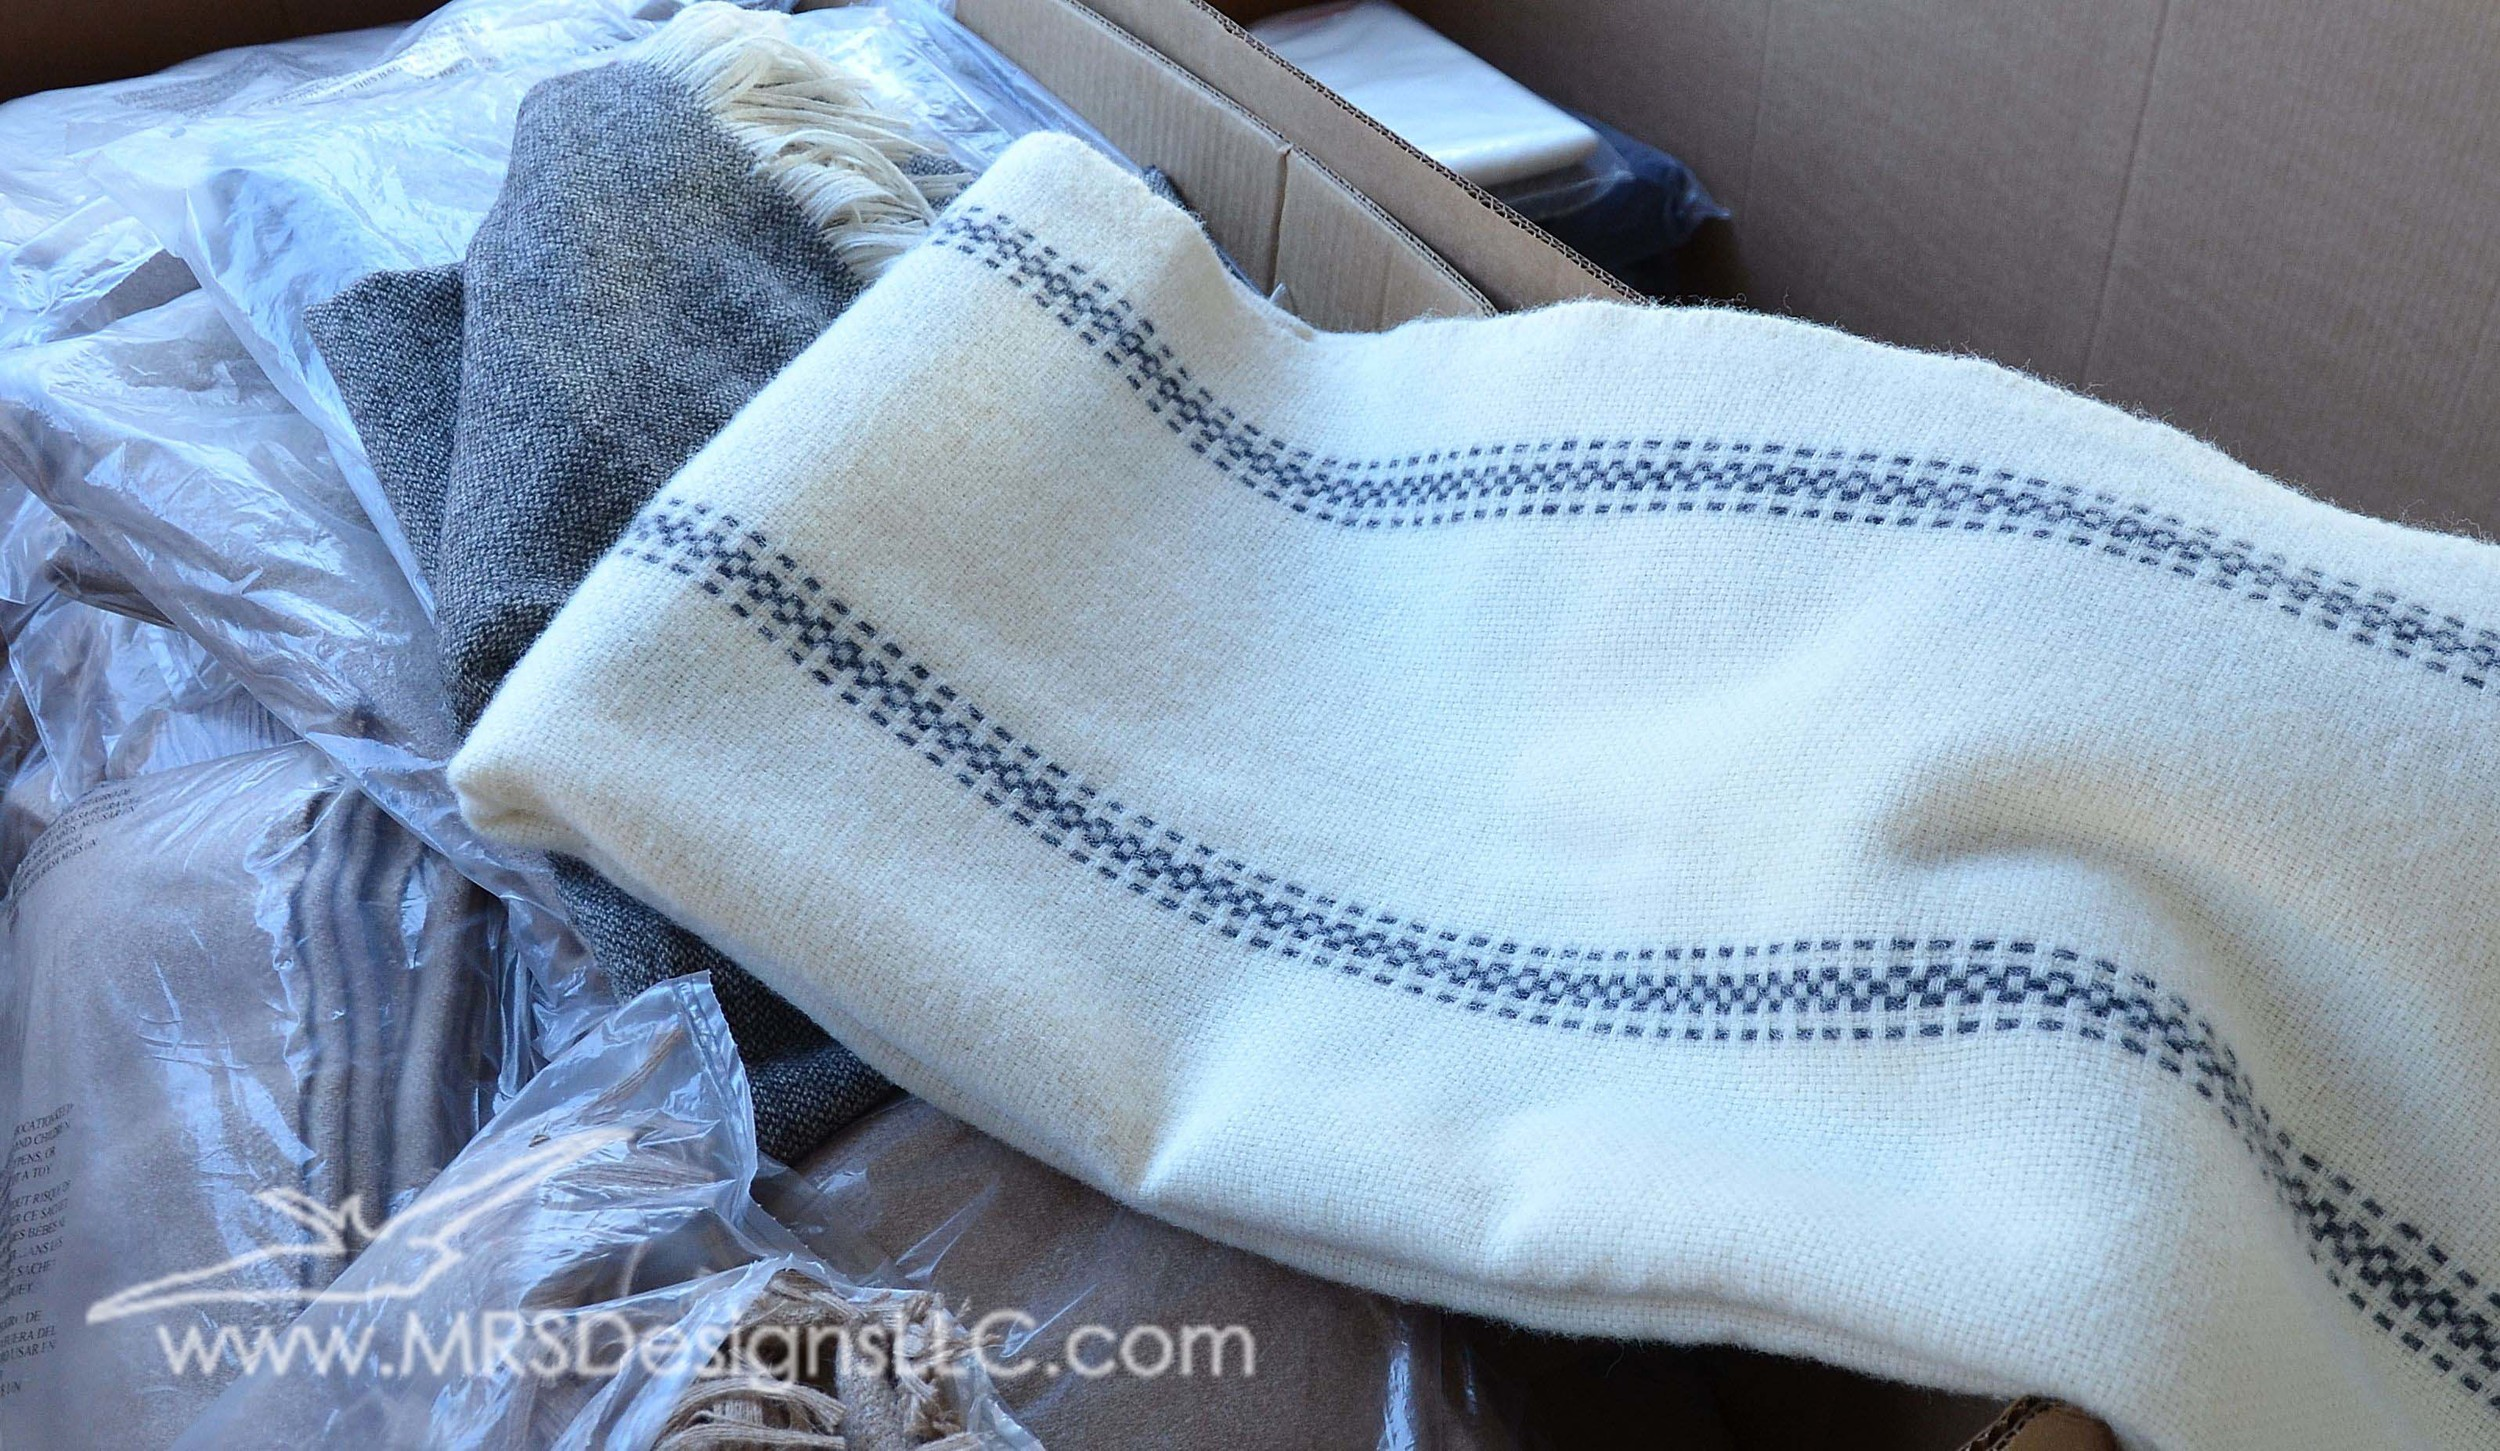 MRS Designs Blog - Annual Tent Sale at the Faribault Woolen Mills